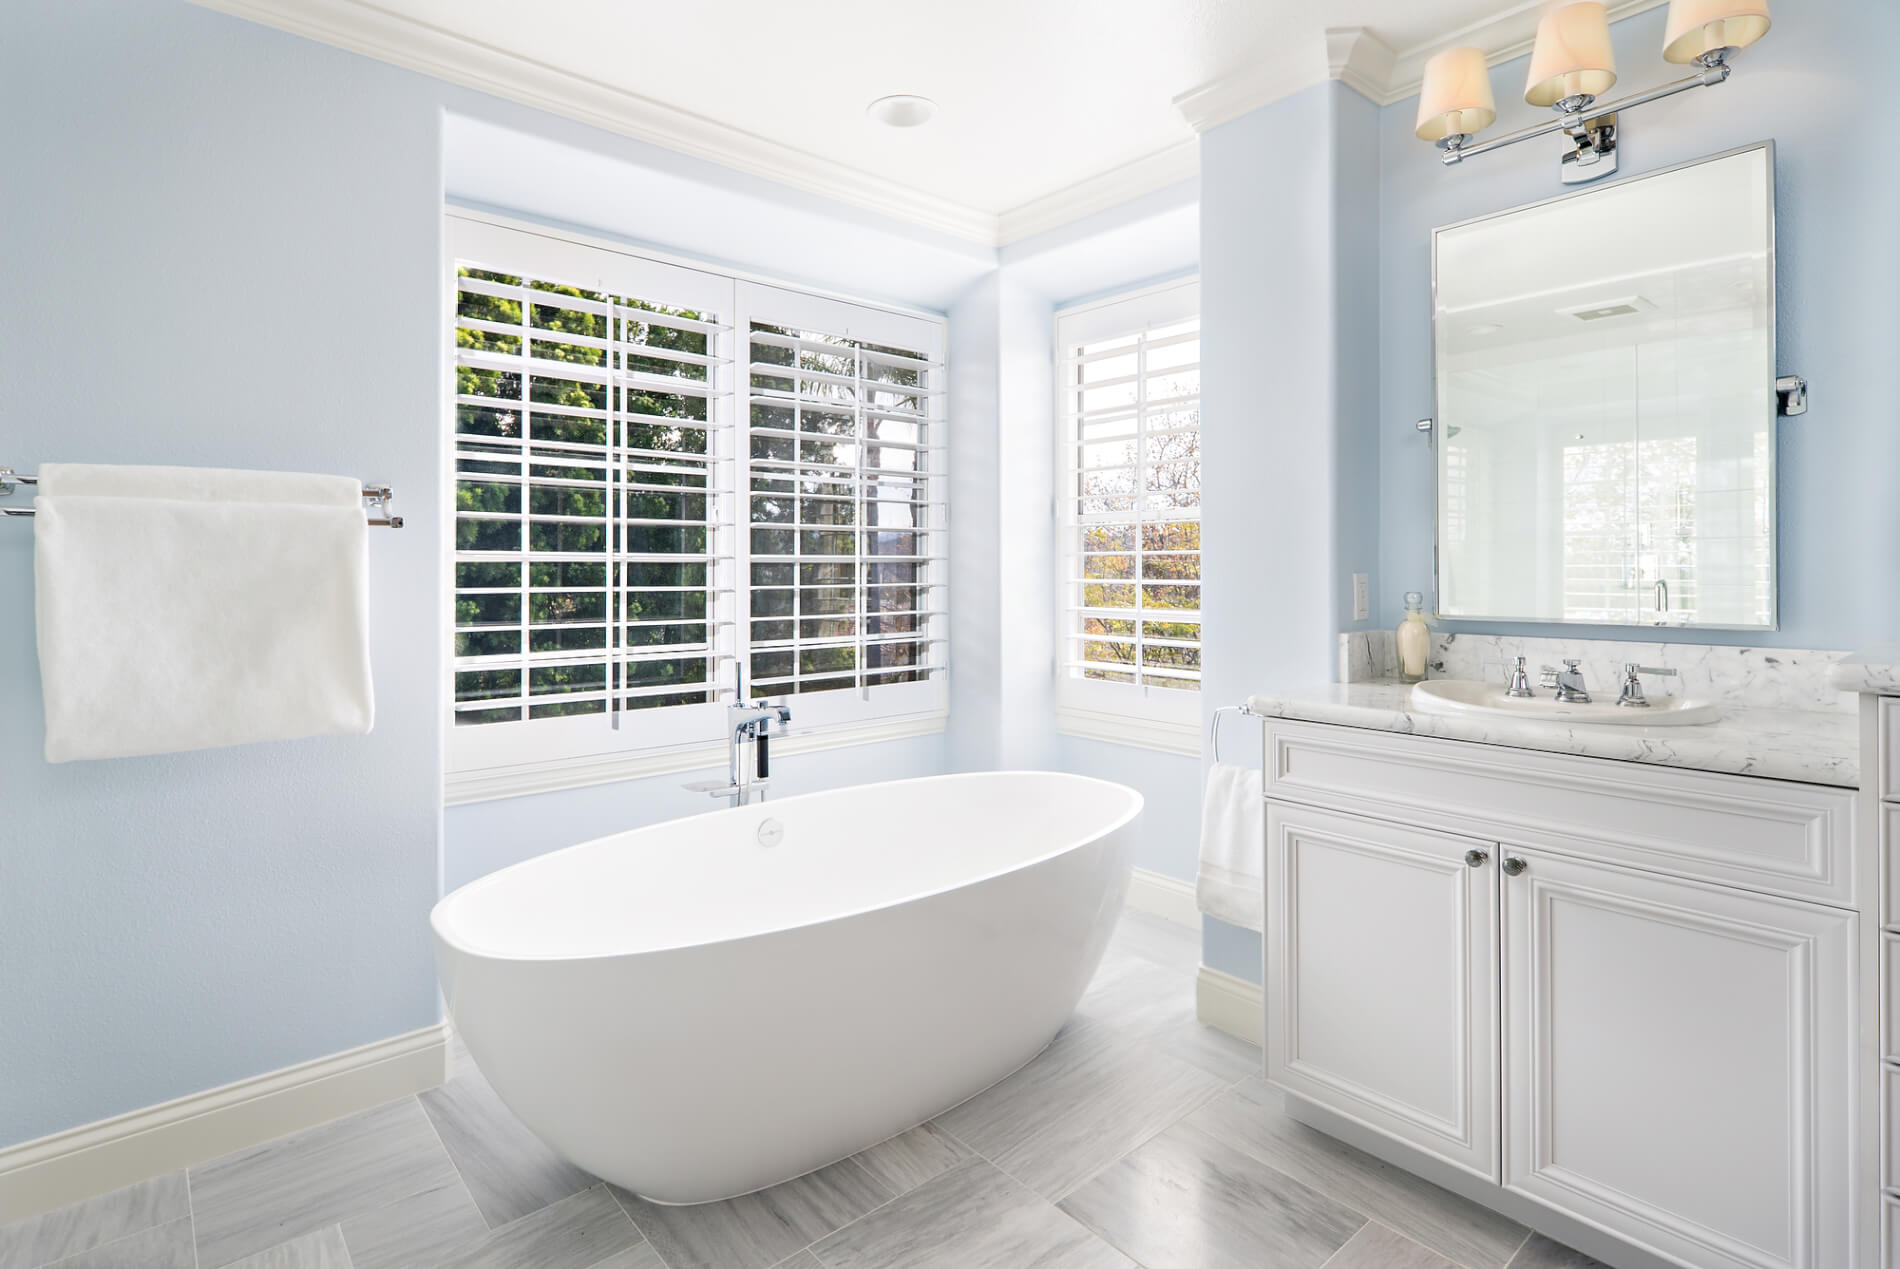 Bathroom Remodeling Services Irvine, Bathroom Remodeling Services Orange County, Bathroom Remodeling Services Corona del Mar